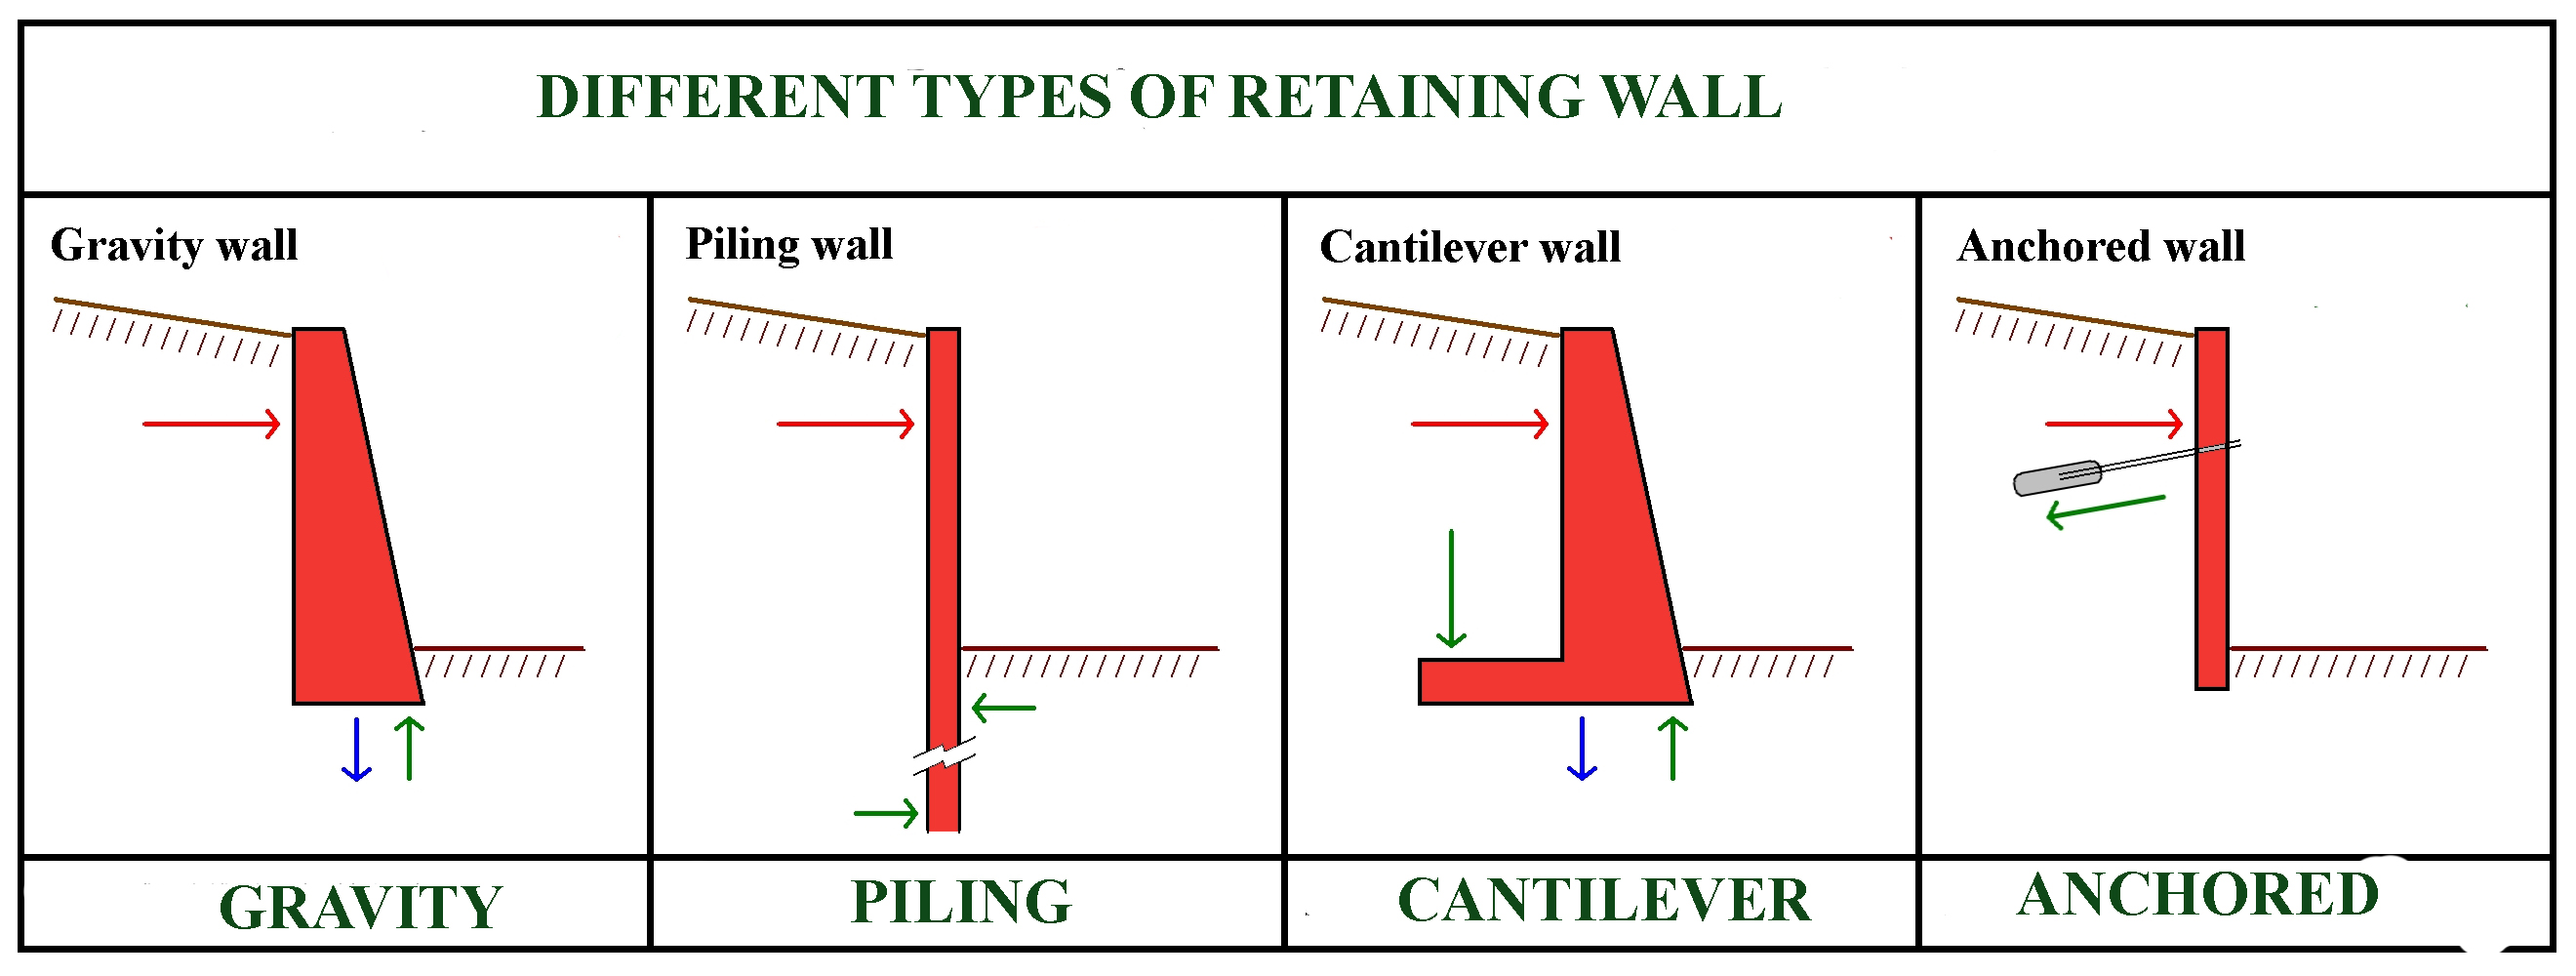 Design Of Retaining Walls Examples: Definition And Types Of Retaining Walls